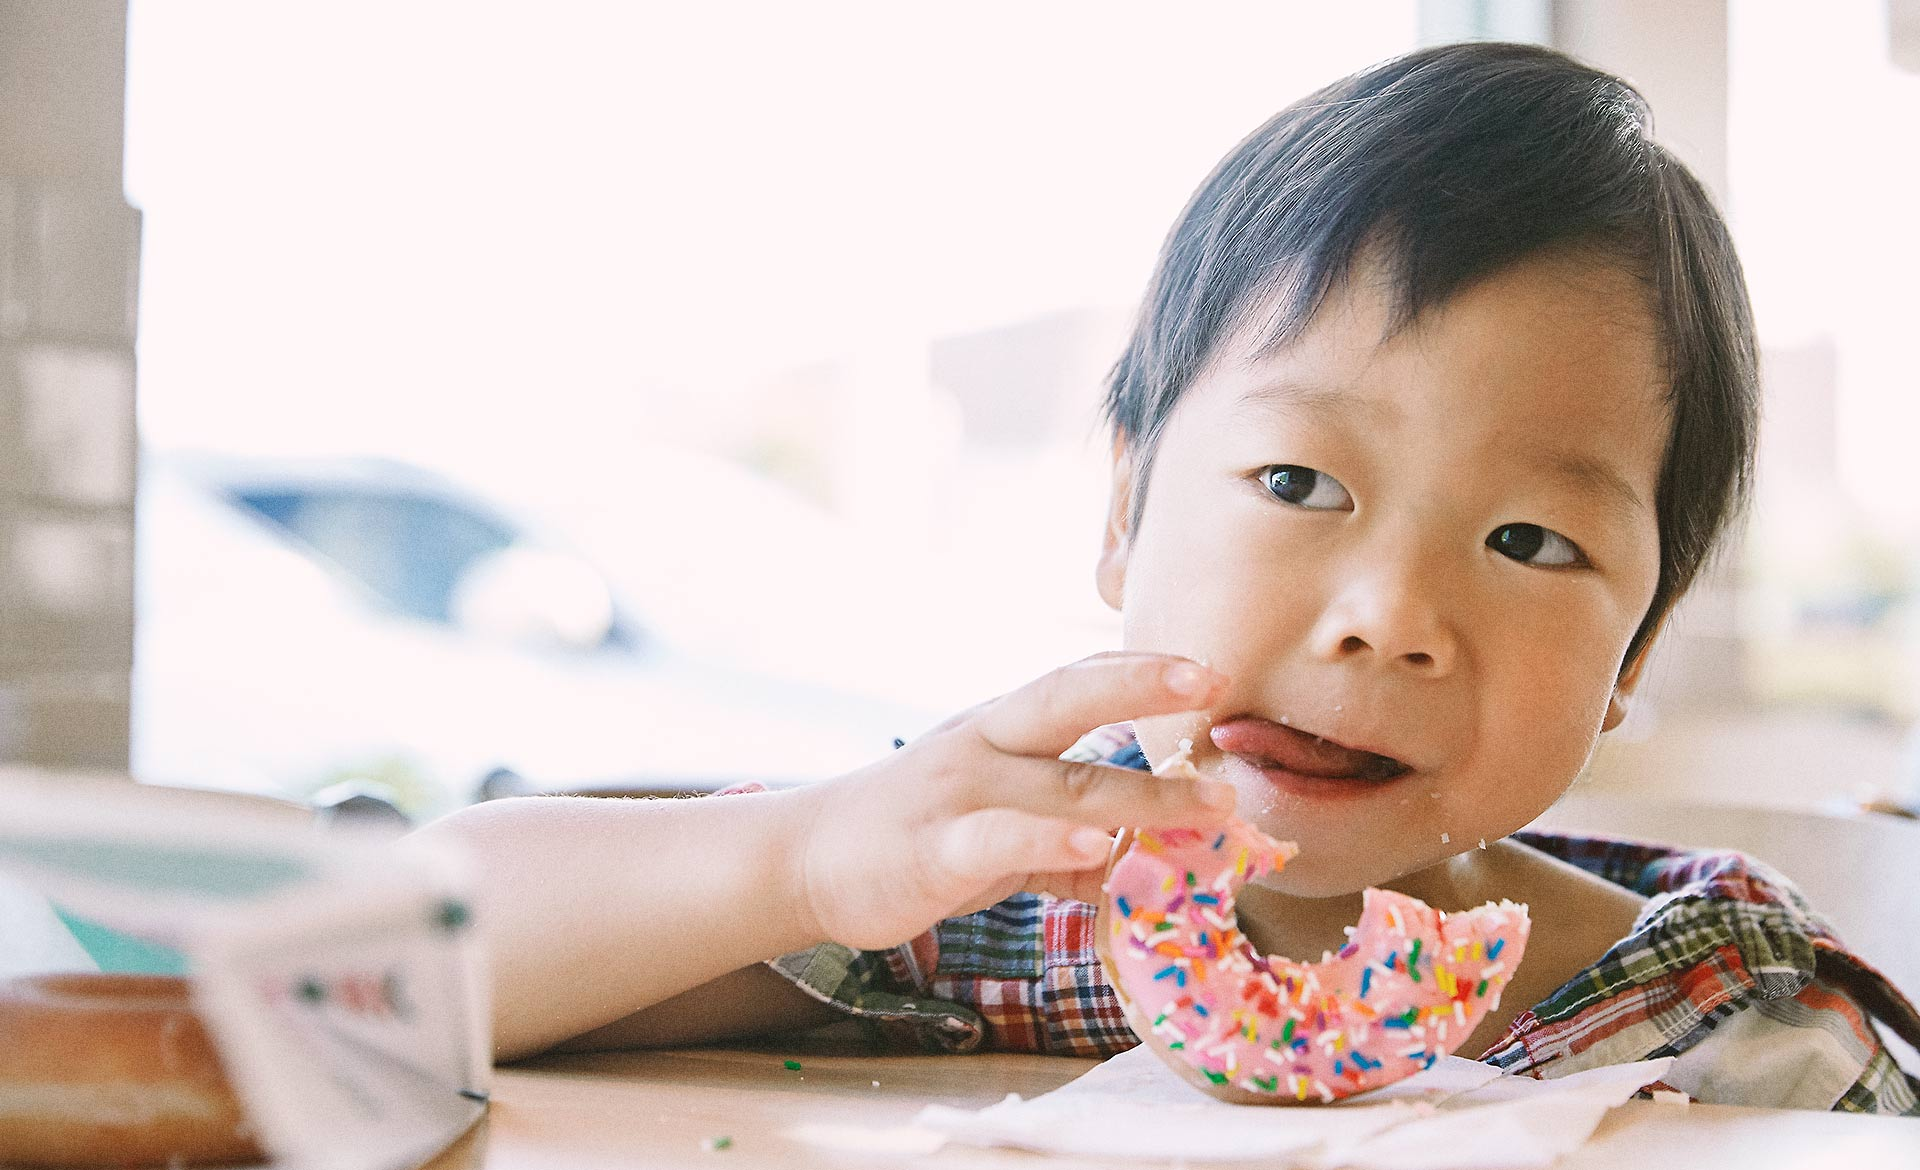 Japanese boy eating a donut